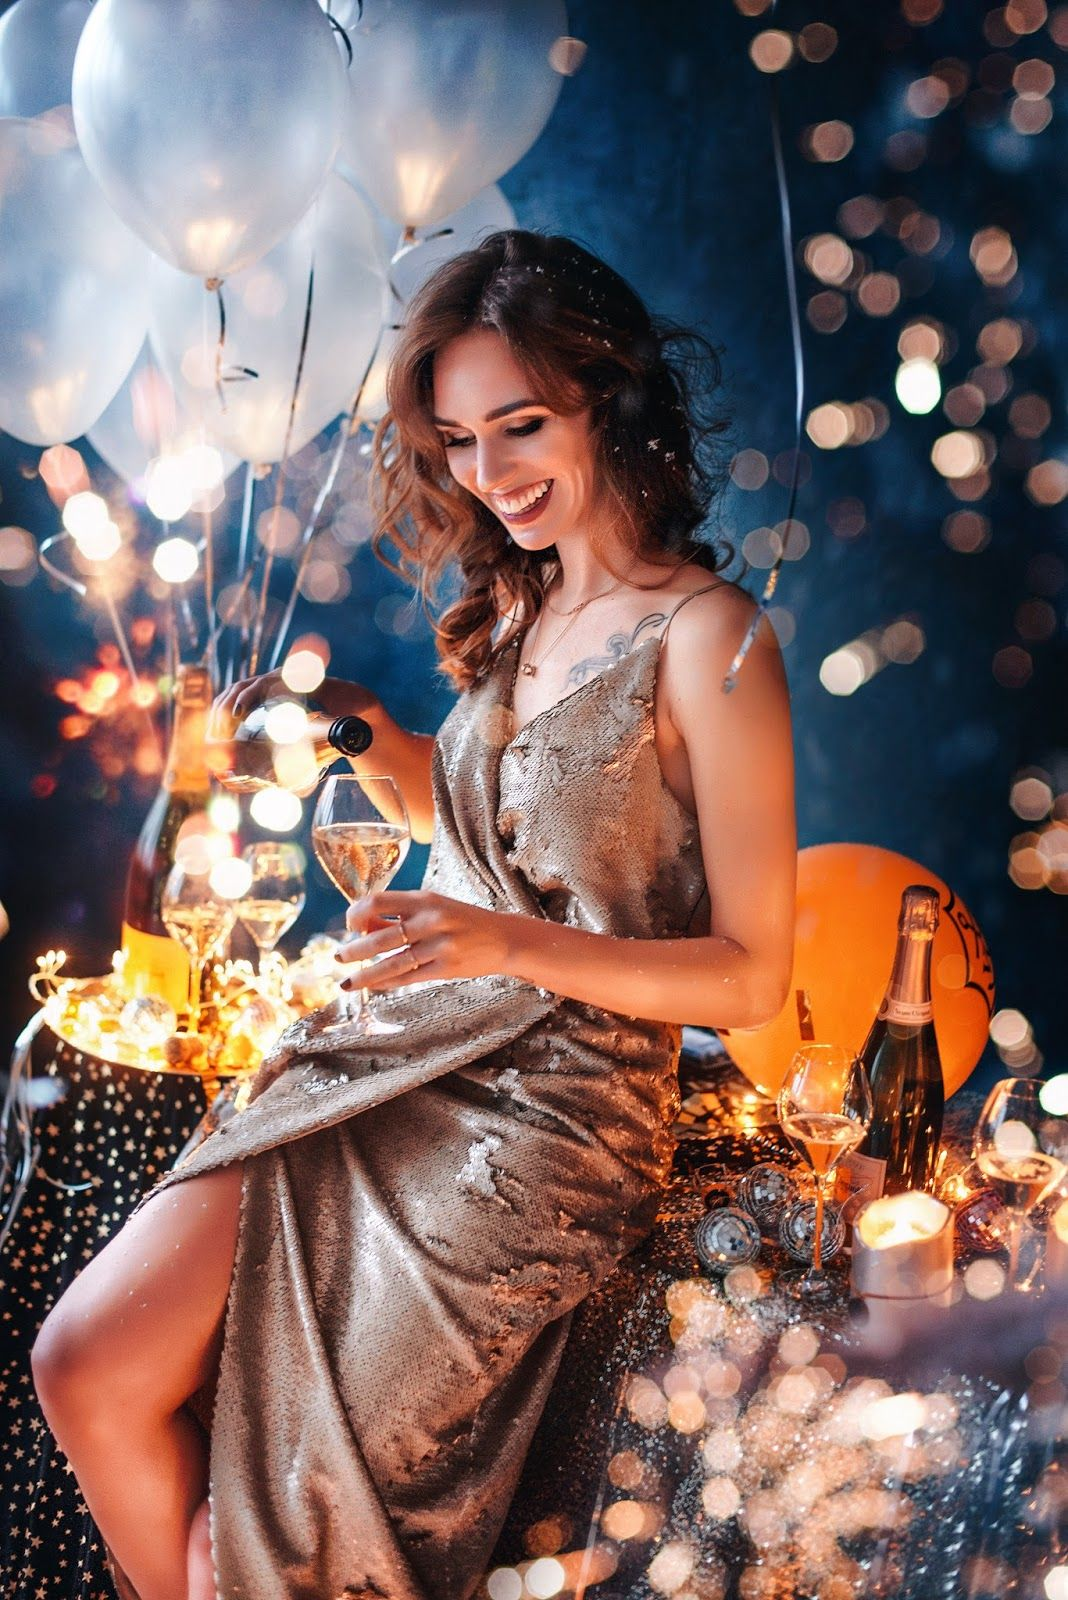 veuve clicquot champagne balloons confetty photoshoot | Birthday photoshoot,New year photoshoot, Glam photoshoot